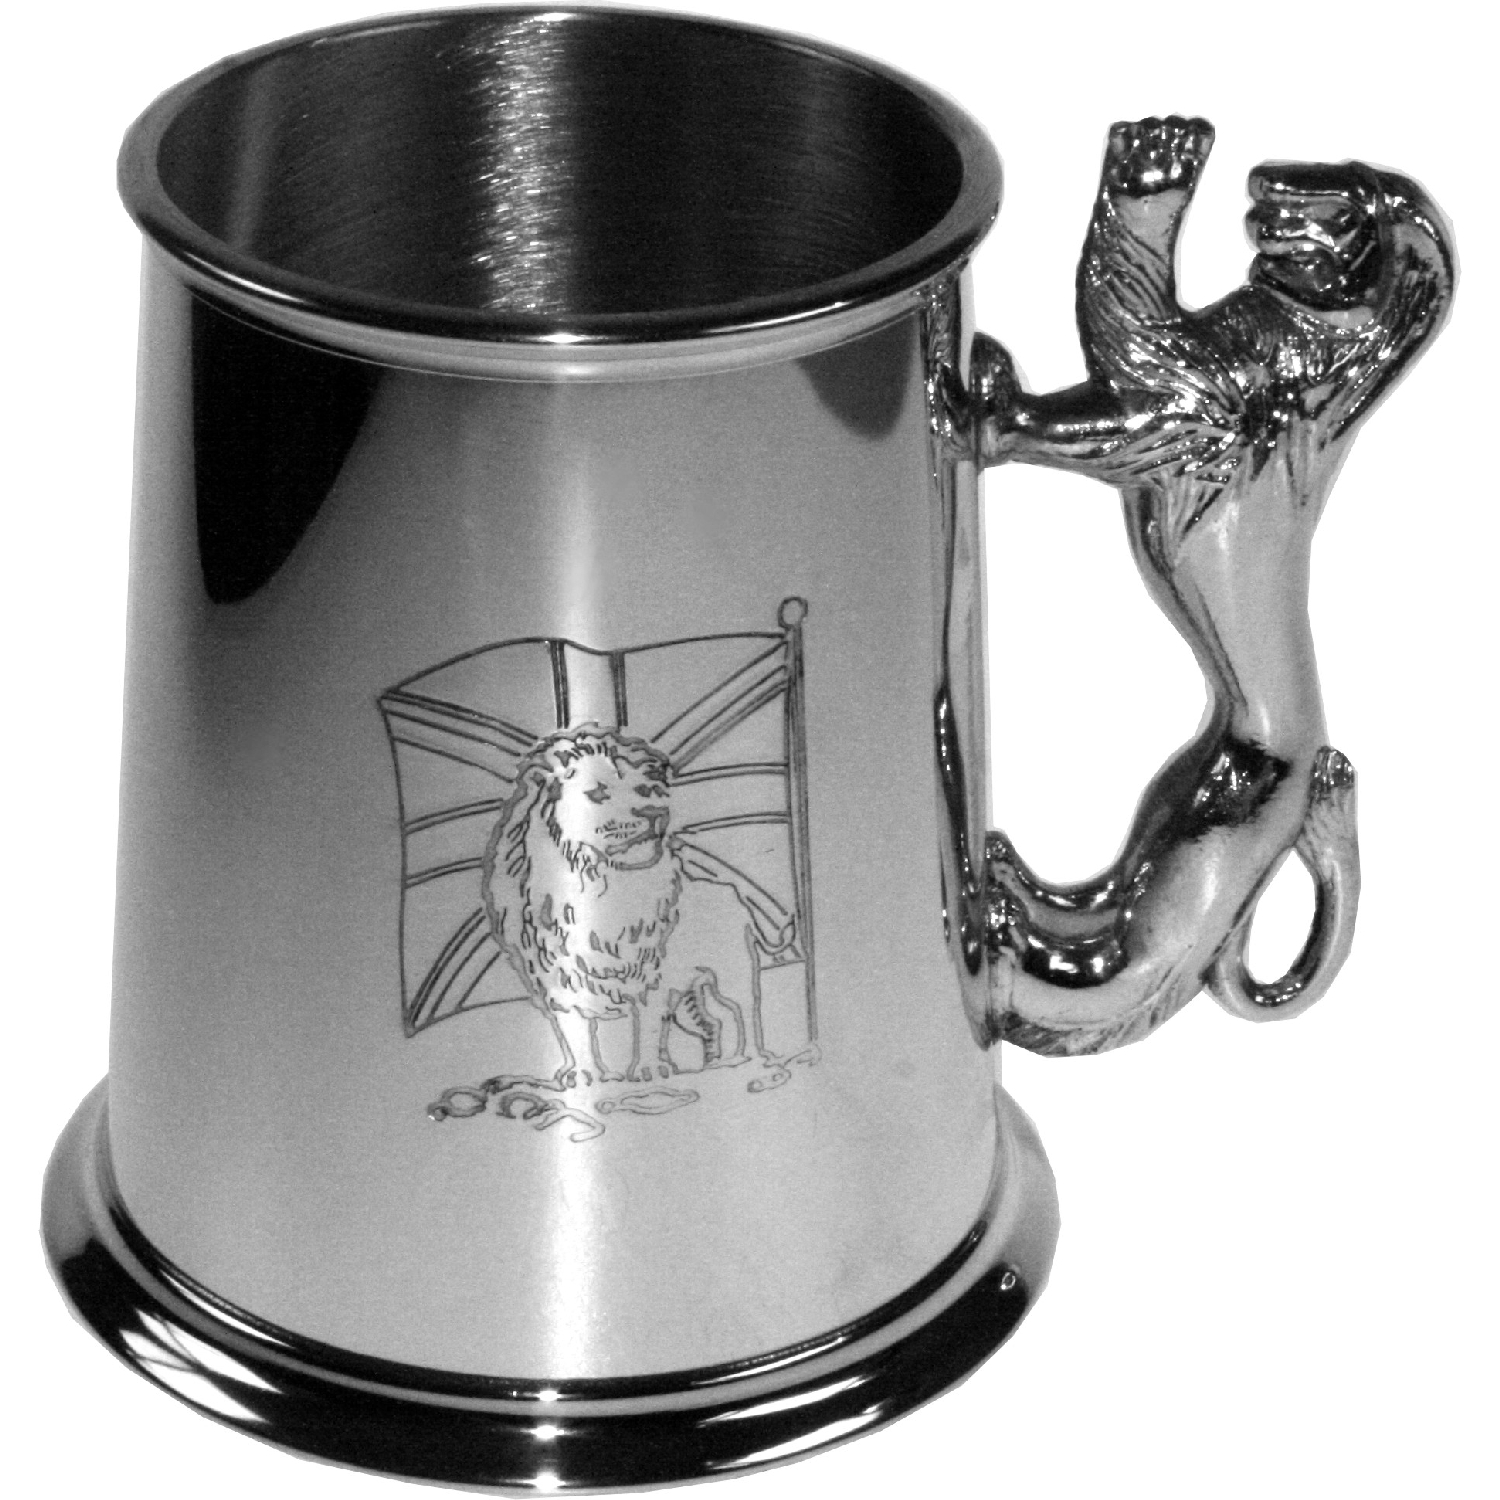 Union Flag Pewter Tankard. onstructed from English pewter by expert craftsmen. A traditional tankard including the Union Flag embossed logo. Presented in a standard packing box. Also incorporating a lions shaped handle and lots of room for etching.